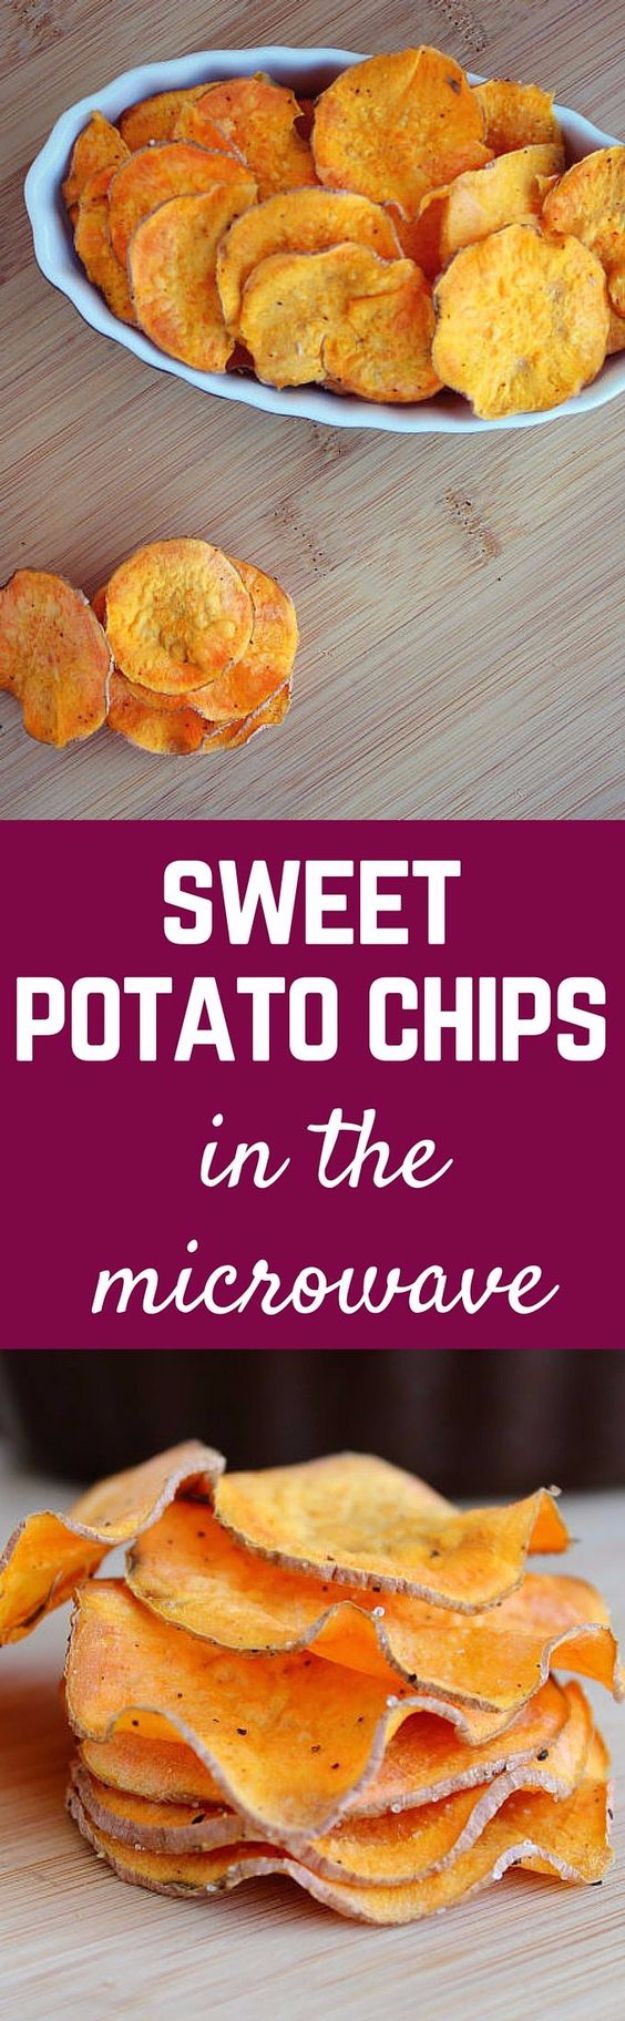 Easy Snacks You Can Make In Minutes - Homemade Sweet Potato Chips - Quick Recipes and Tricks for Making After Workout and After School Snack - Fast Ideas for Instant Small Meals and Treats - No Bake, Microwave and Simple Prep Makes Snacking Fun #snacks #recipes